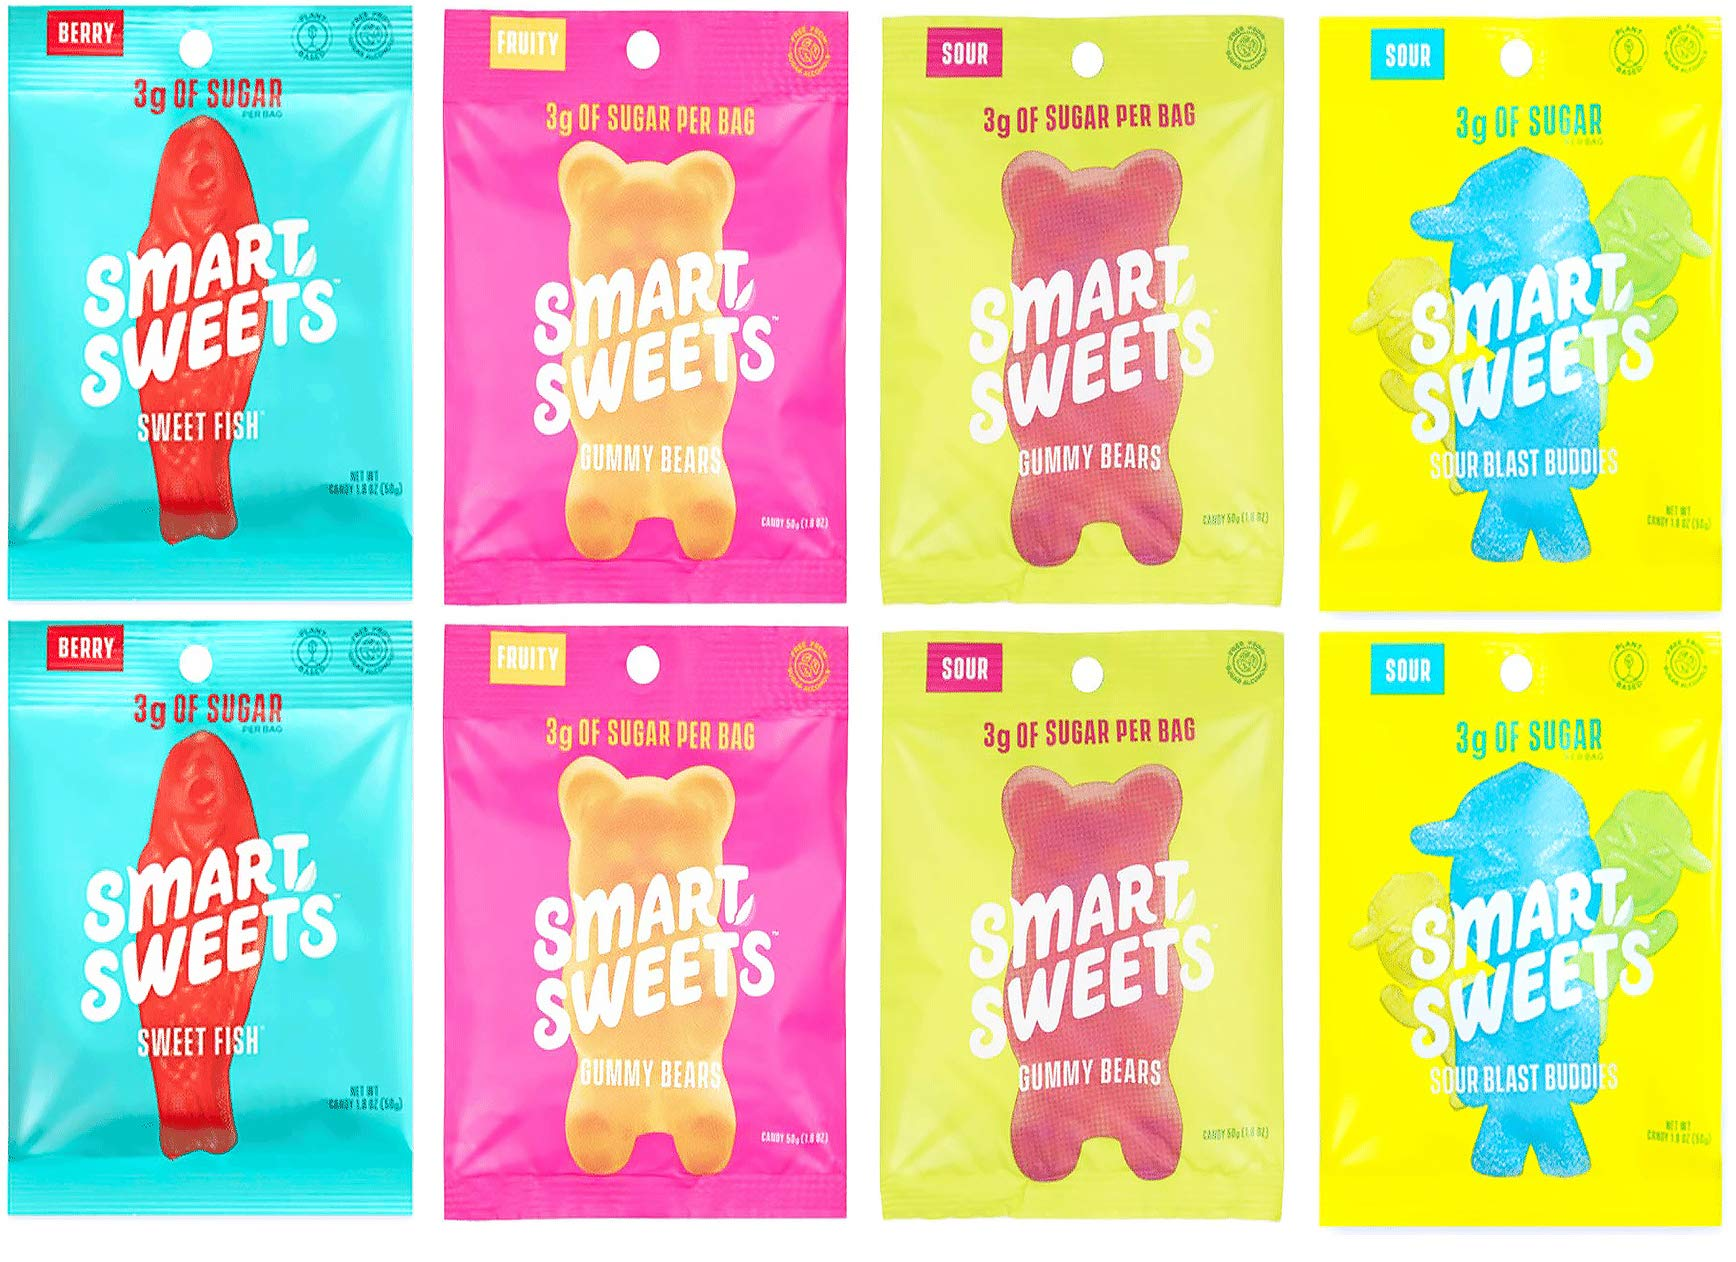 Peaceful Squirrel Variety, SmartSweets, Gummy Candy Variety of 8 (2x Sweet Fish, 2x Sour Blast Buddies, 2x Fruity Gummy Bears, 2x Sour Gummy Bears) Free of Sugar Alcohols and No Artificial Sweeteners